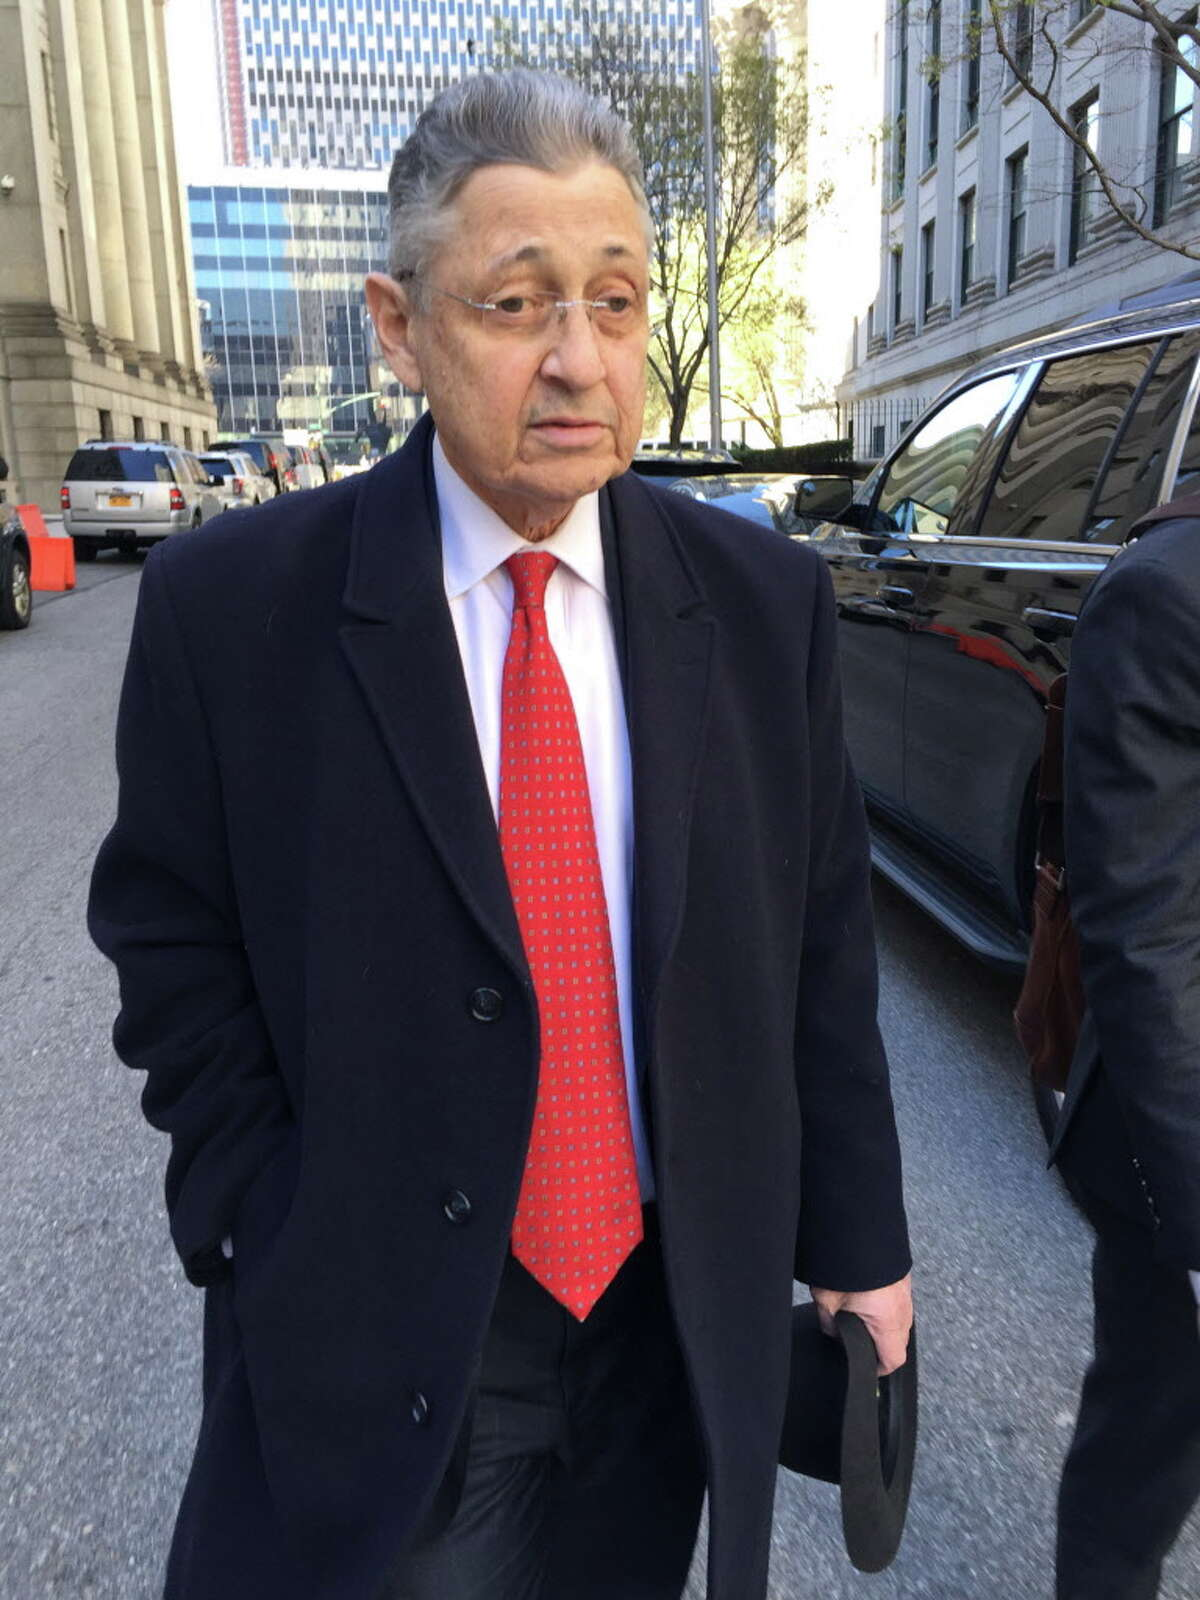 FILE- In this April 14, 2016 file photo, former New York Assembly Speaker Sheldon Silver leaves court in New York. Silver will learn his fate following his November conviction in a $5 million corruption case. Judge Valerie Caproni is scheduled to sentence the Manhattan Democrat on Tuesday, May 3. (AP Photo/Larry Neumeister, File) ORG XMIT: NY107